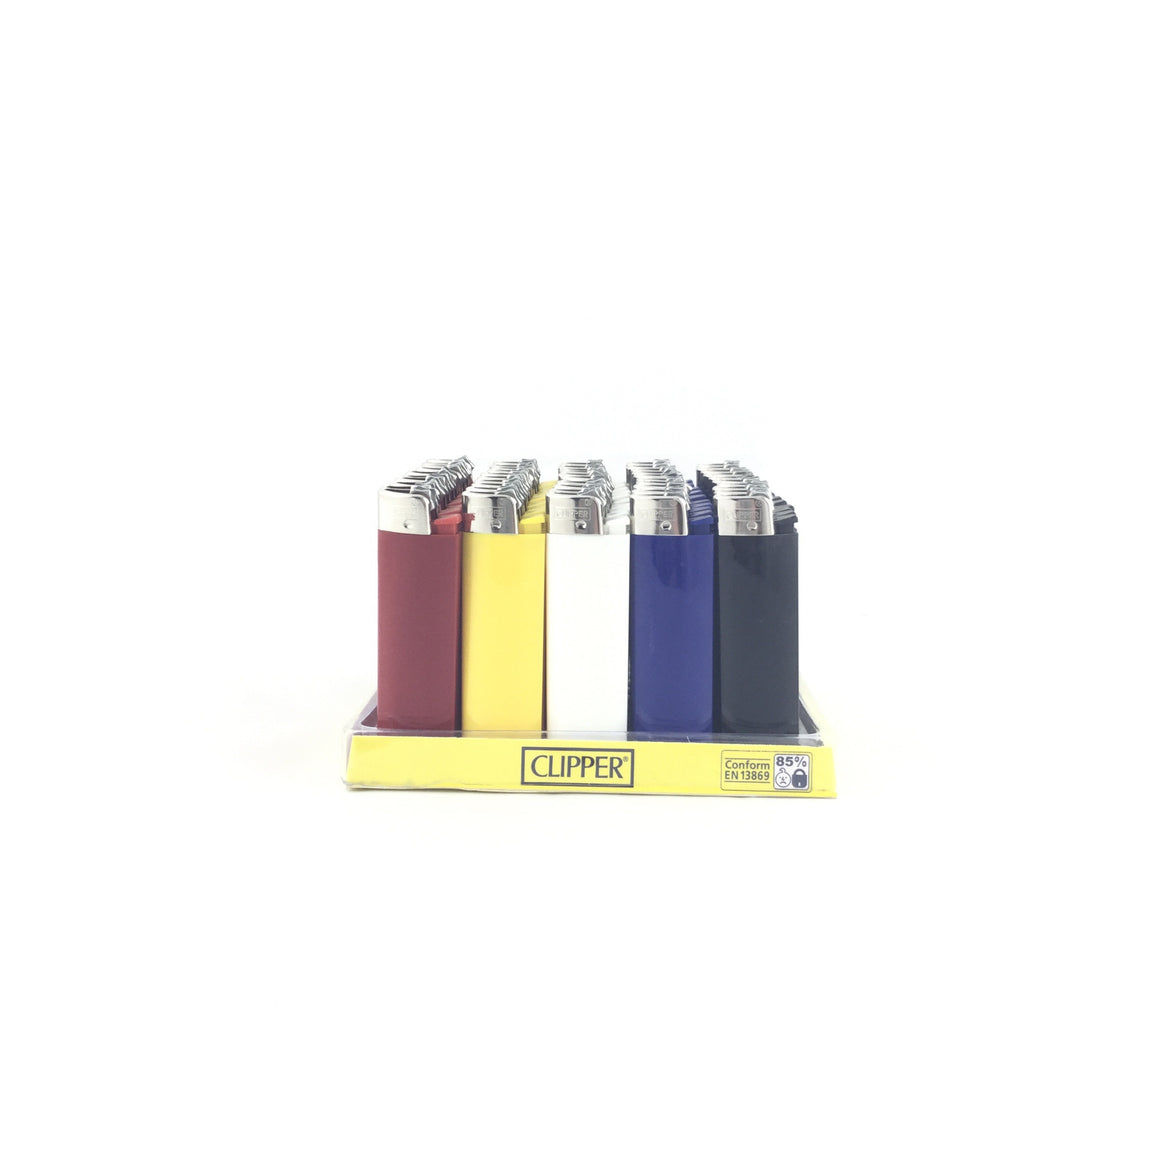 Clipper Lighter Slim